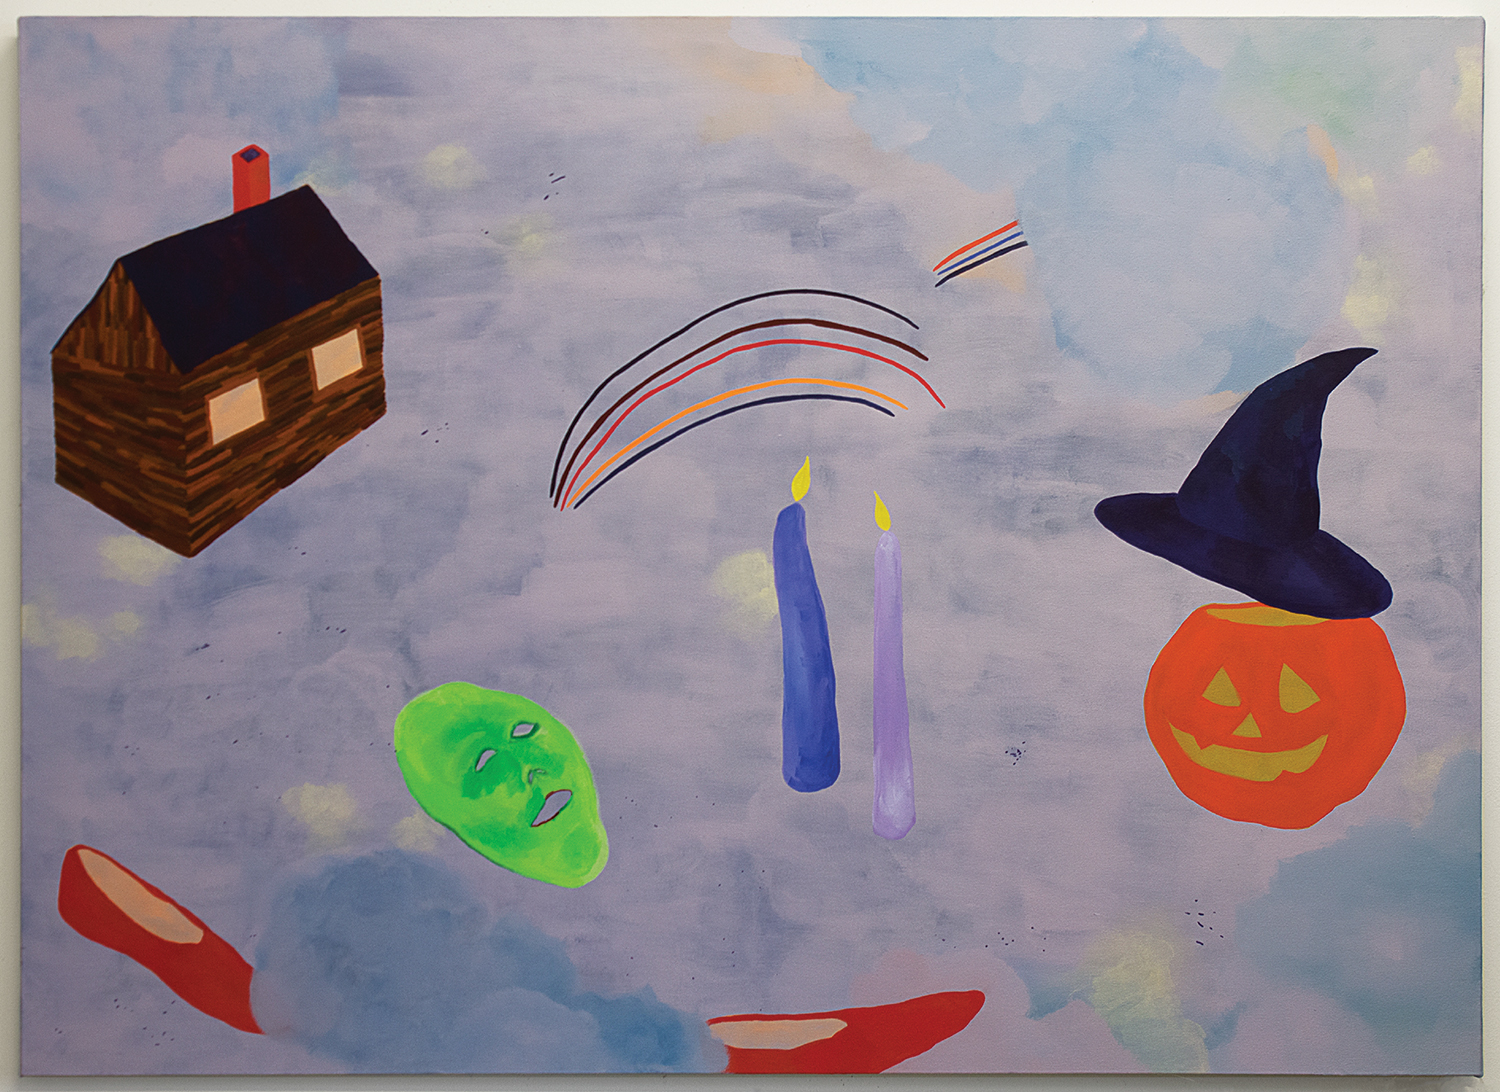 Harley Lafarrah Eaves, More Thematic Plot Points In The Wizard Of Oz From Childhood Memories, 2018. Image courtesy of projects+gallery